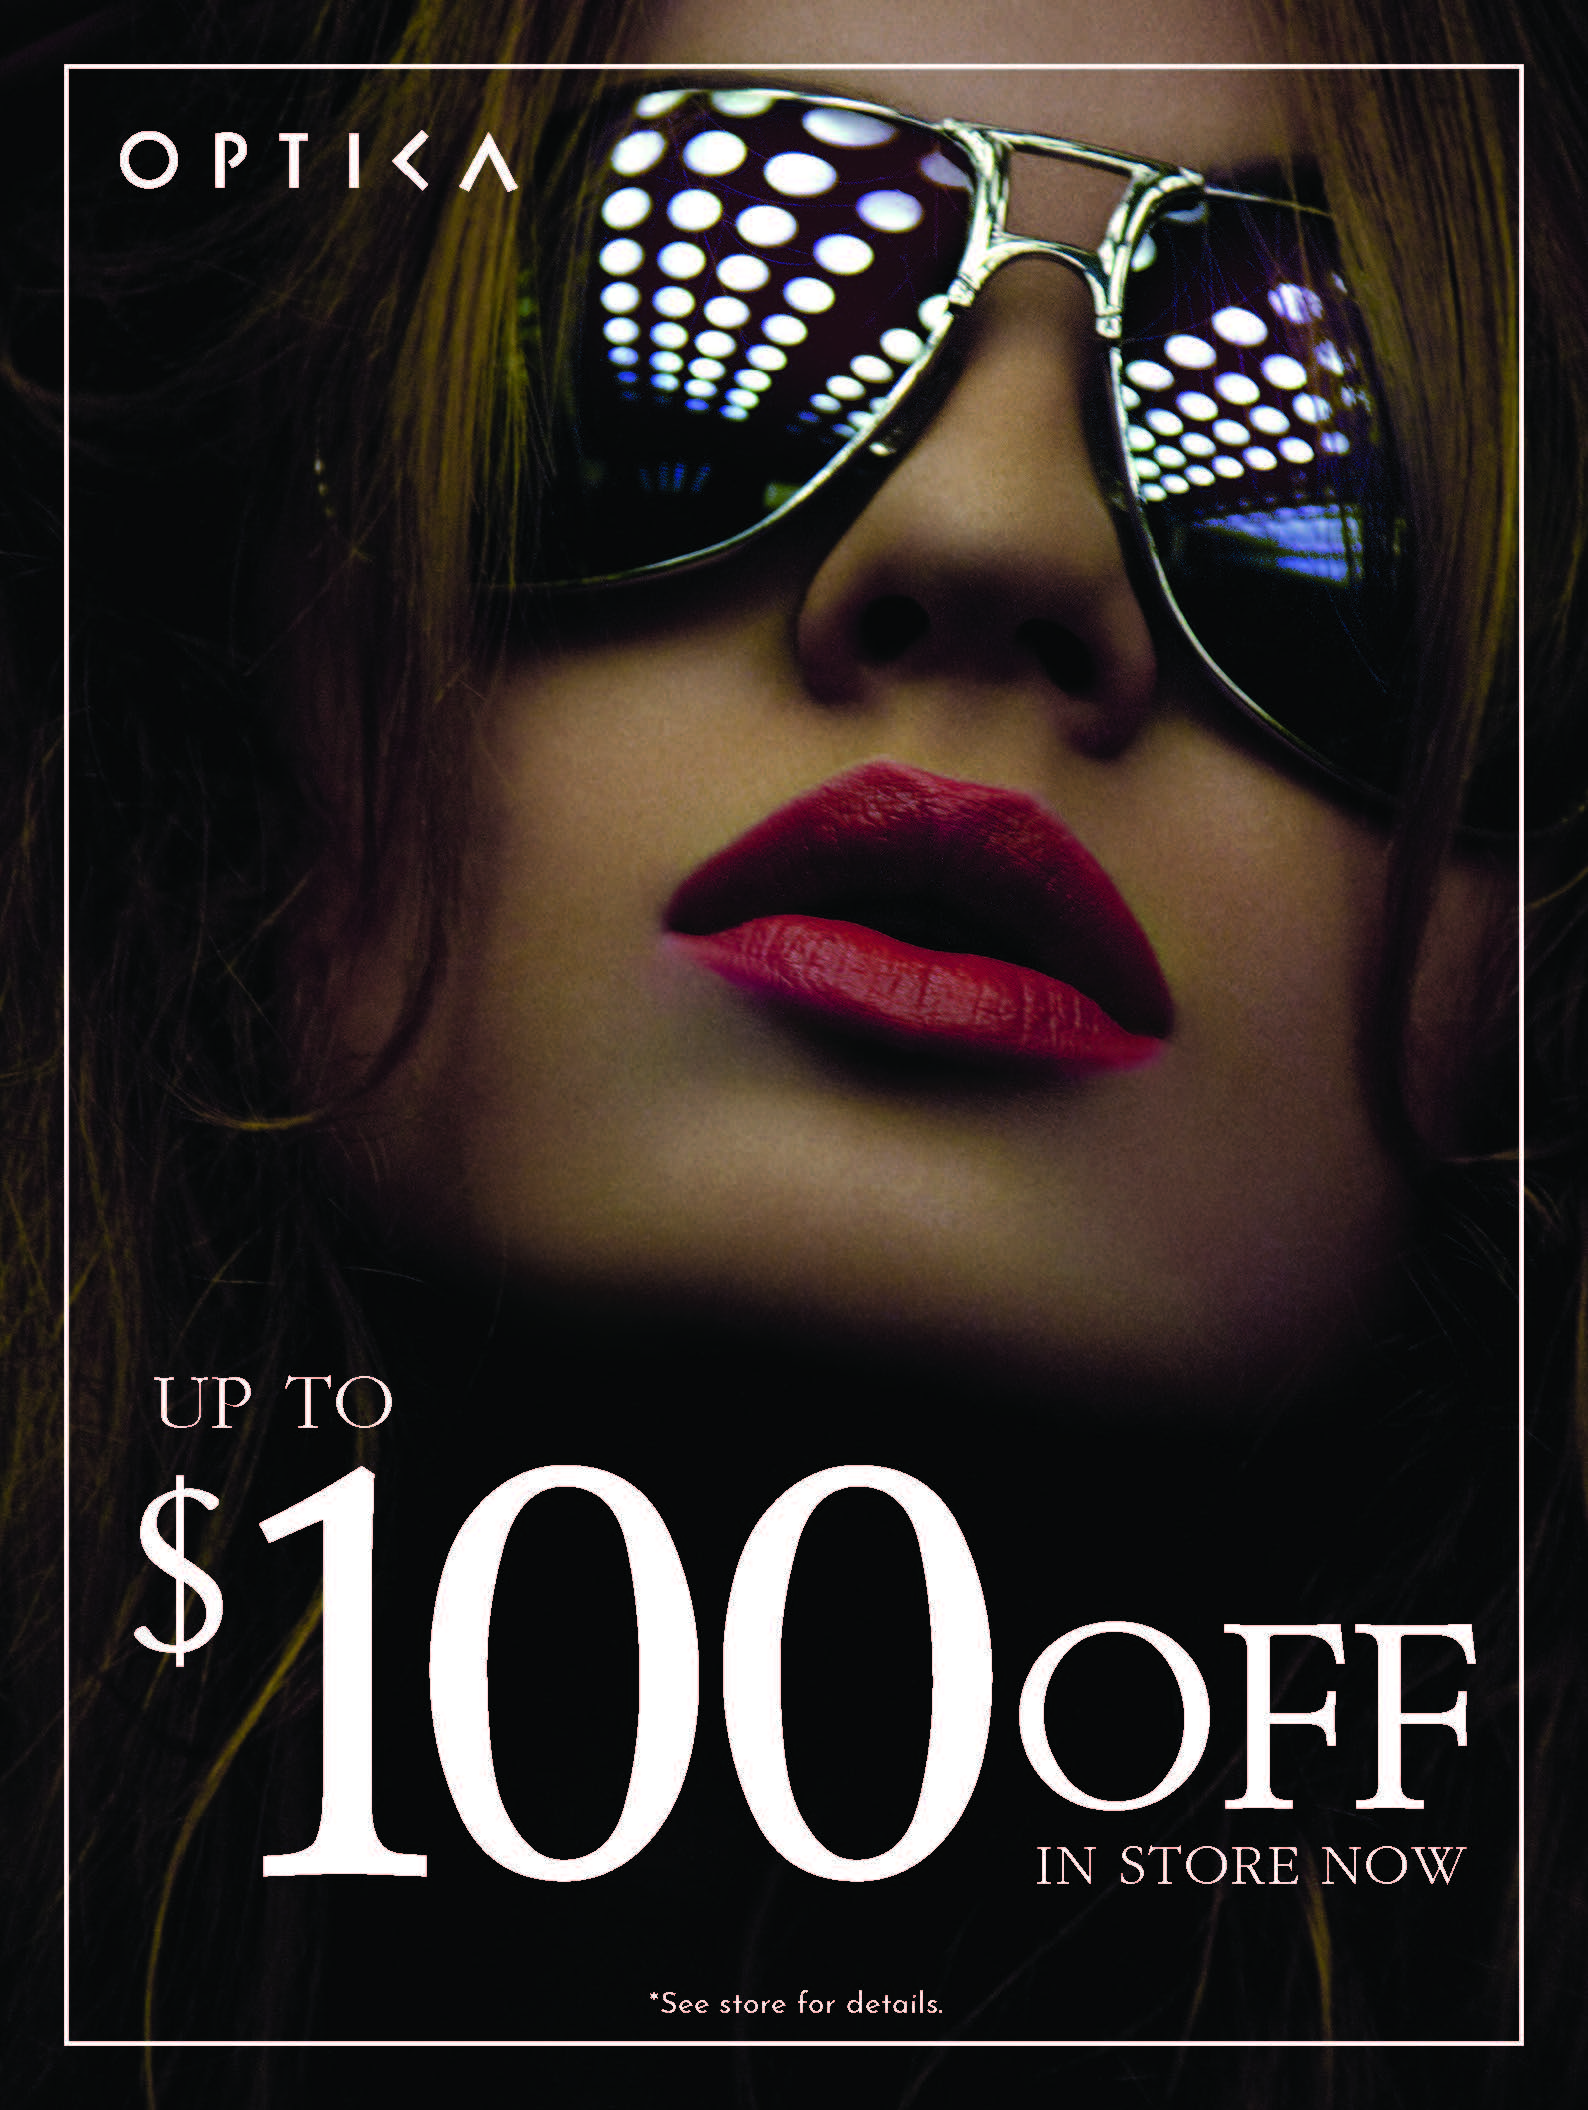 Save Up to $100 In Store at Optica